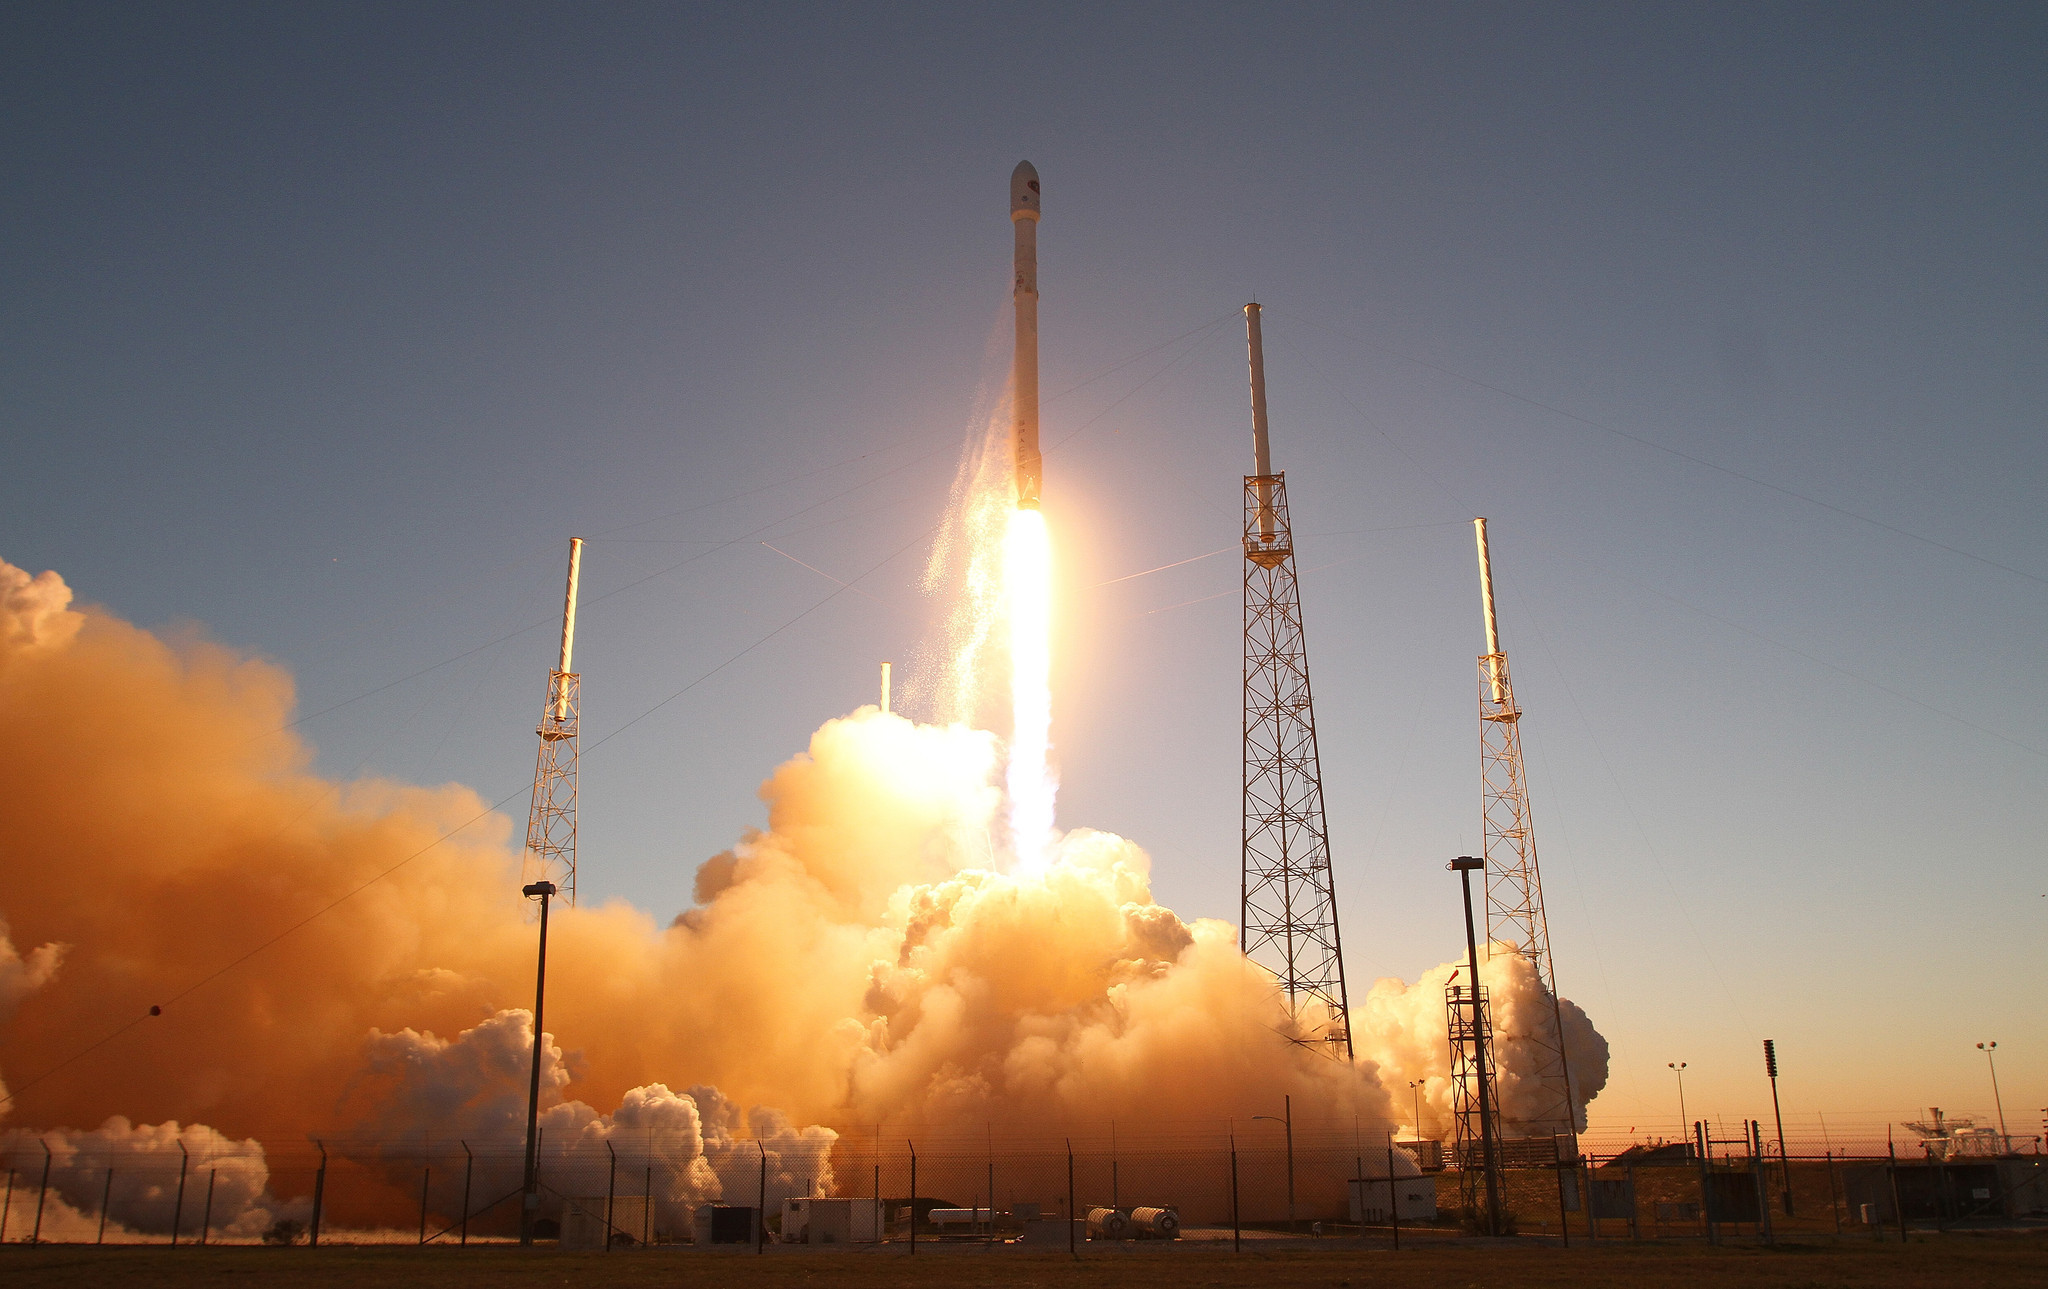 spacex falcon rocket launch - photo #43